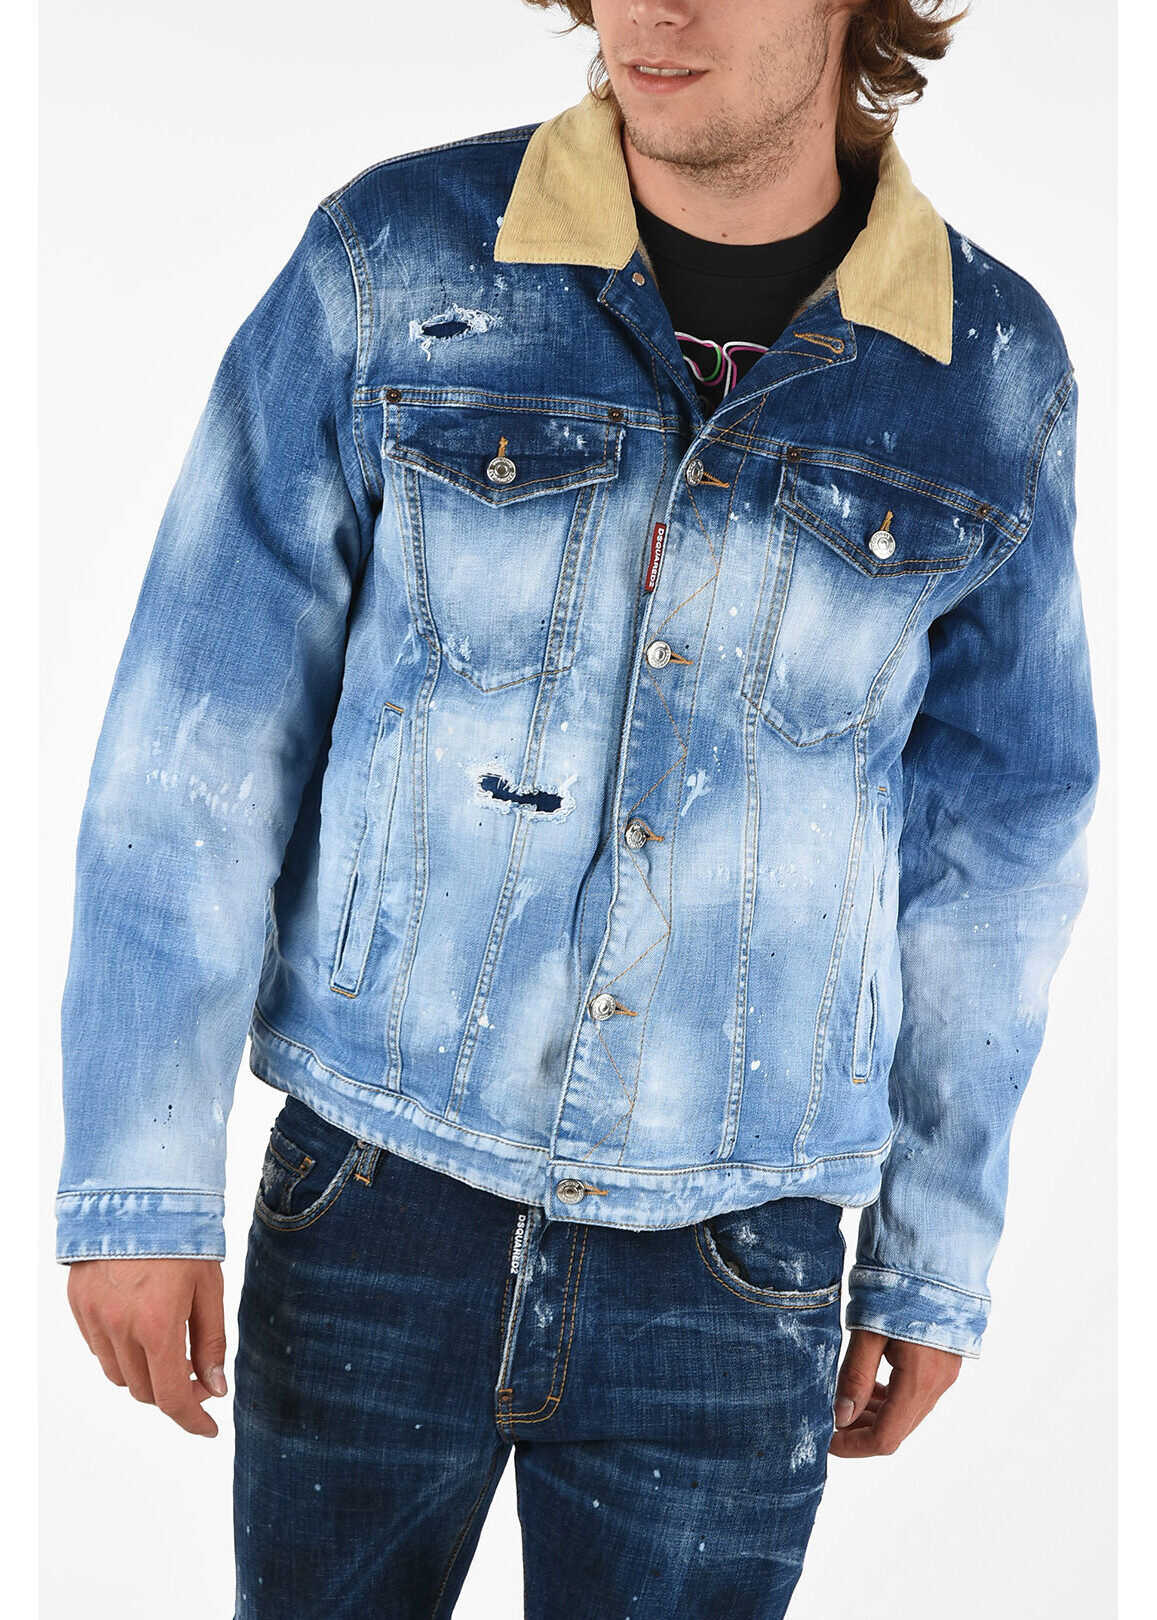 DSQUARED2 Denim Effetto Vintage Jacket BLUE imagine